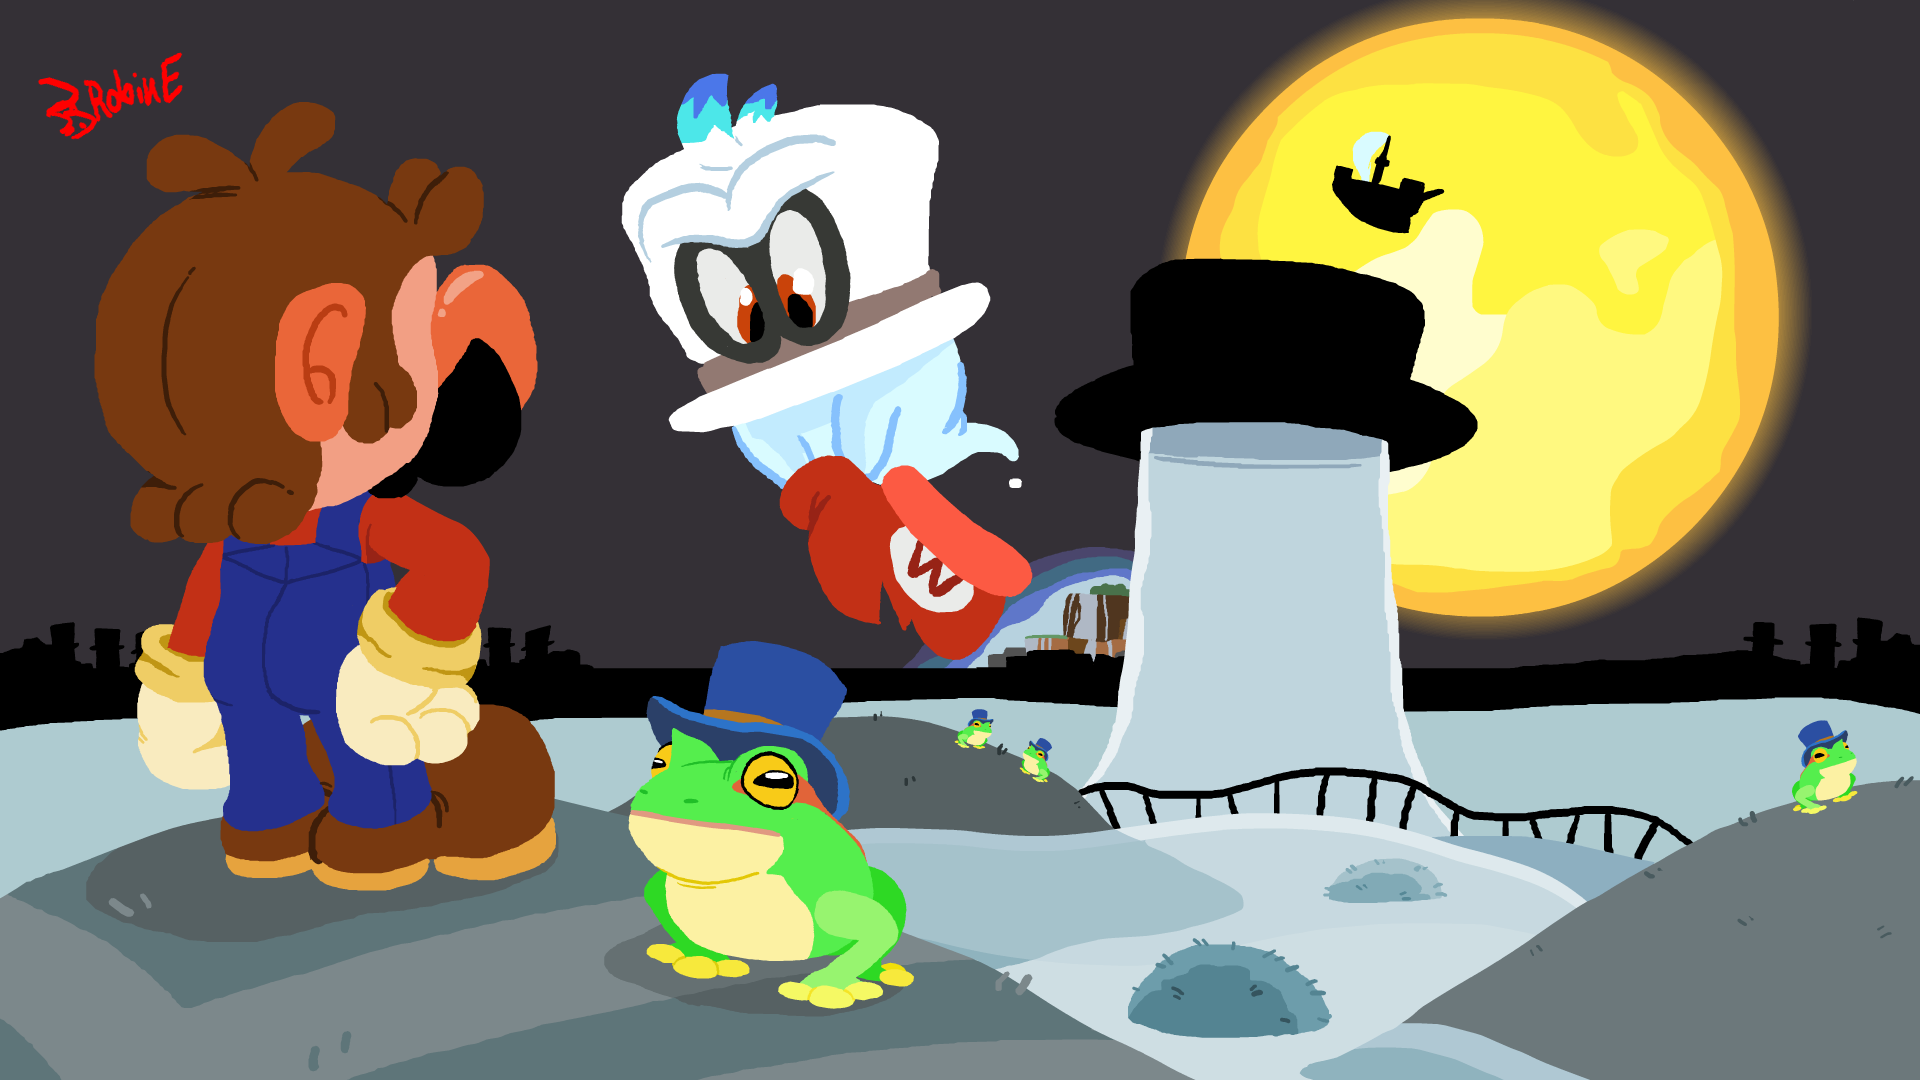 Super Mario Odyssey 2 Welcome To Cap Kingdom By Foreveratoon On Newgrounds